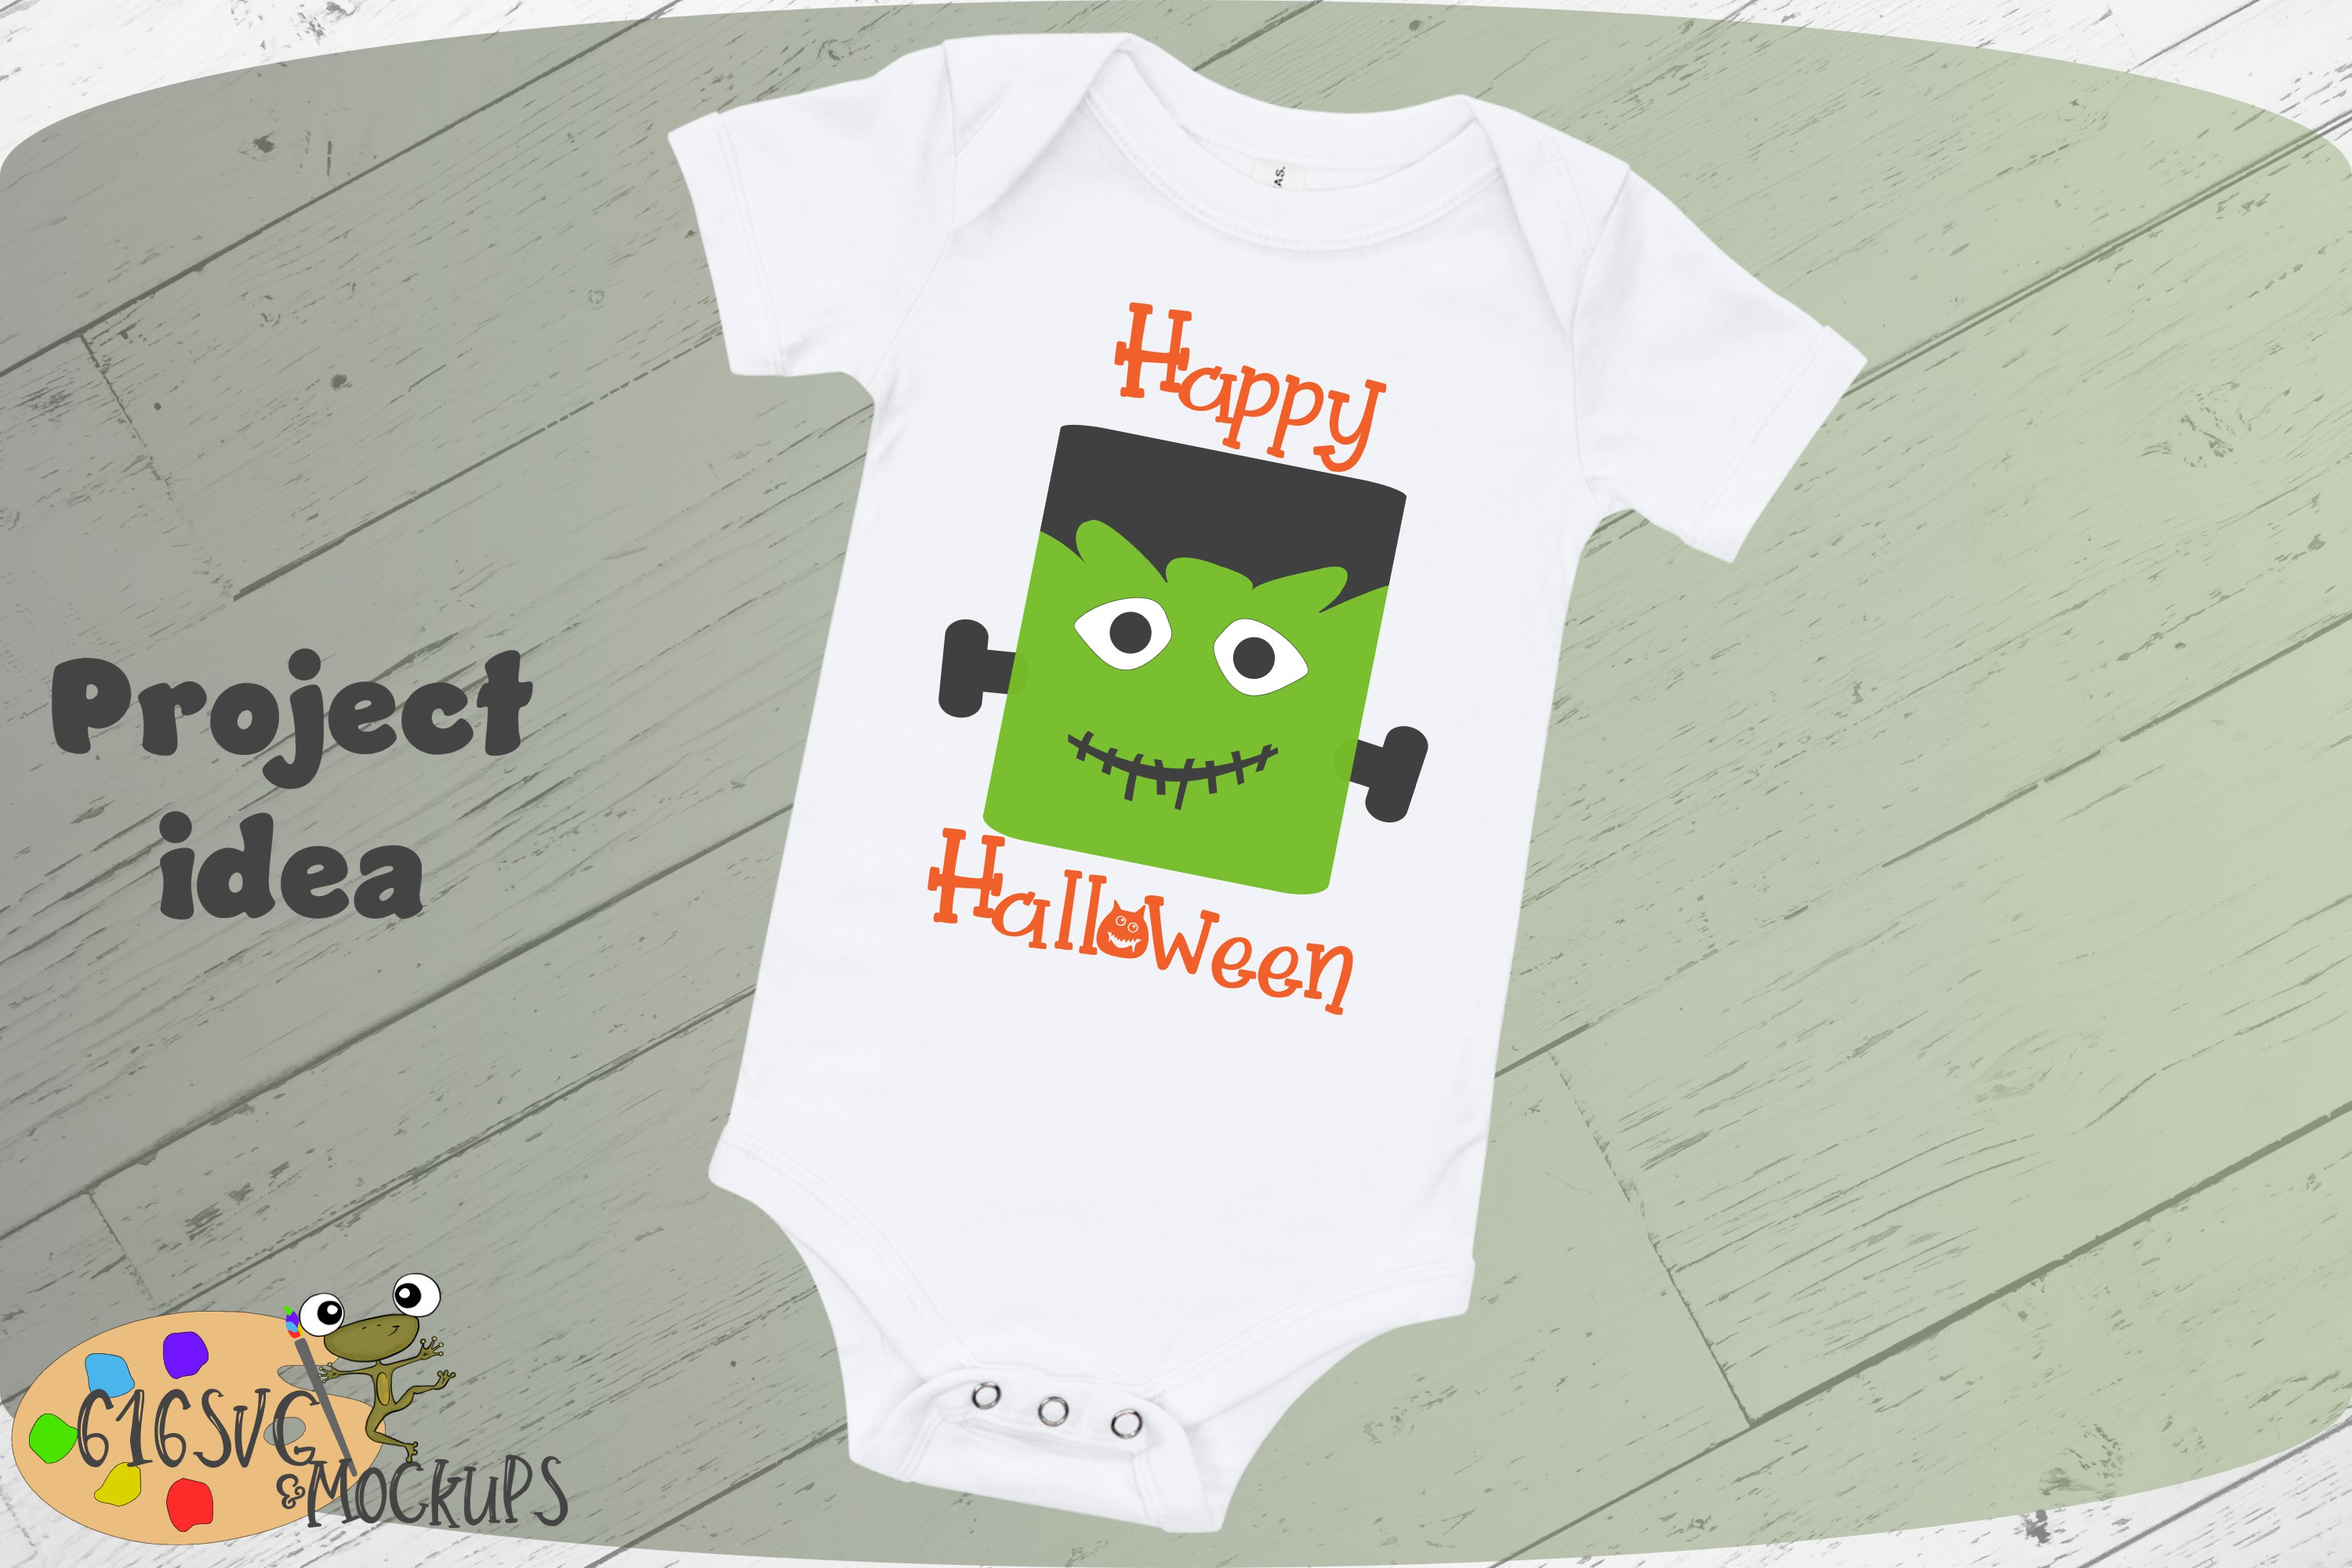 Happy Halloween SVG, DXF, Ai, PNG example image 3